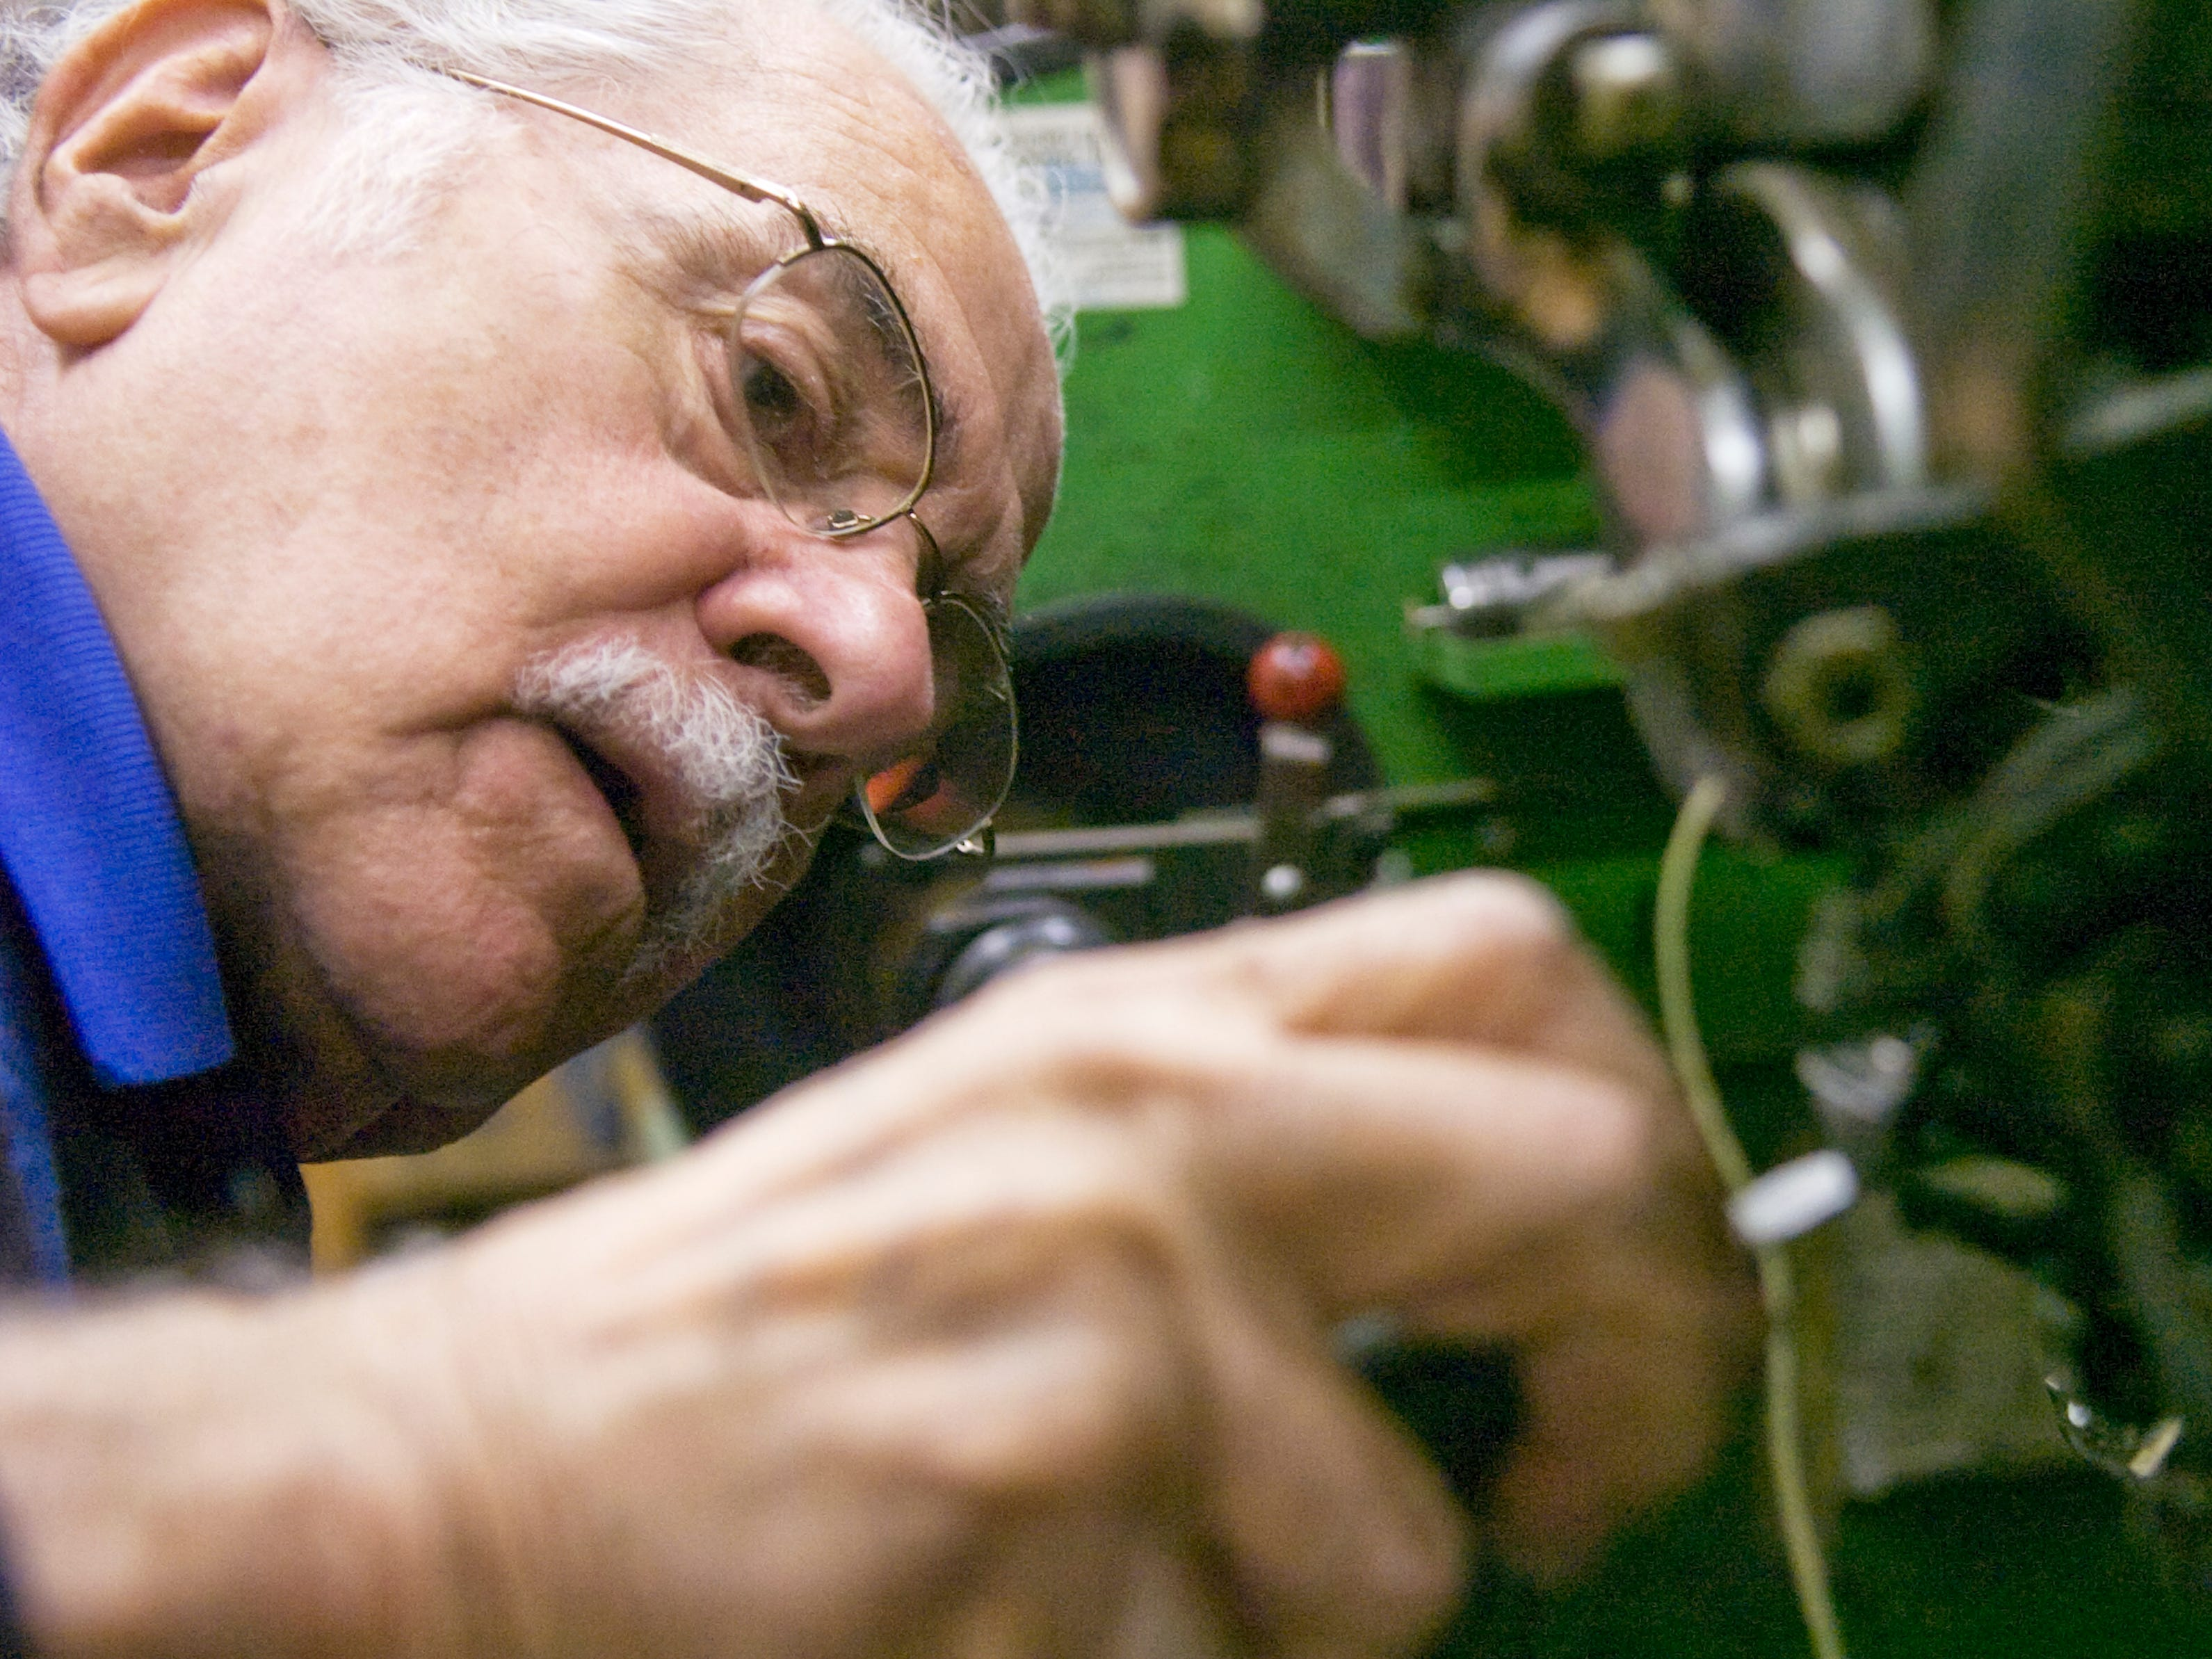 Bud Butera works with the machine that stitches together the shoe and sole at Reineberg's Shoes in Springettsbury Township in October 2008. Butera said he started working in shoe repair when he was 14 years old. Butera still works at the shop one day a week..